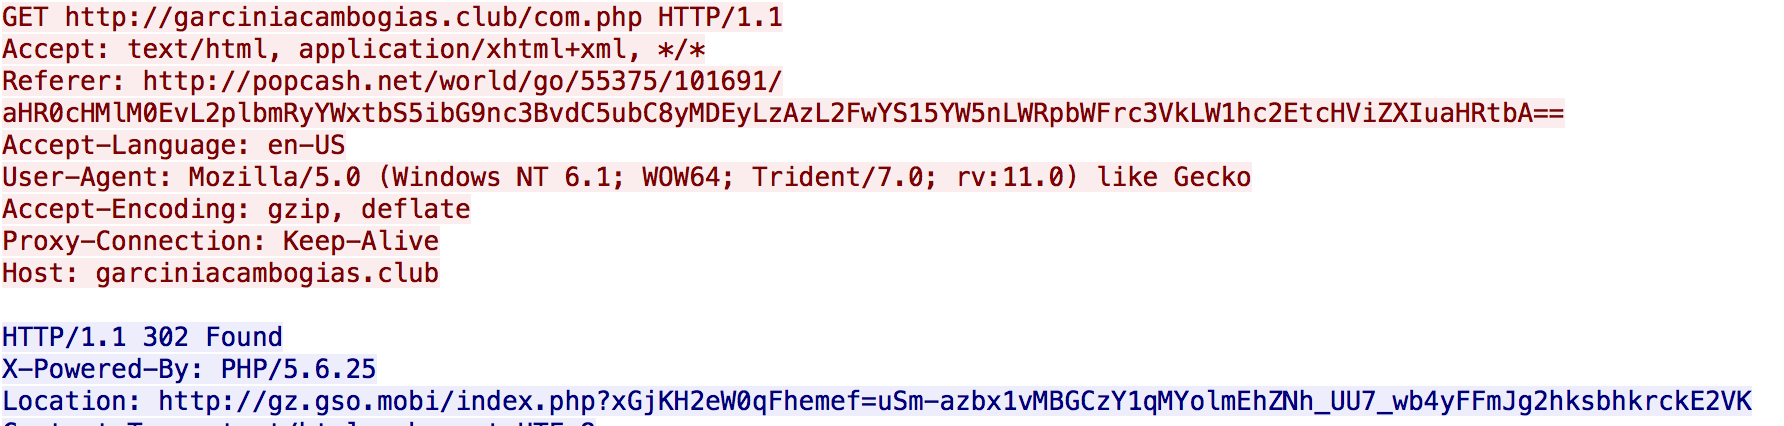 APT29 Domain Fronting With TOR